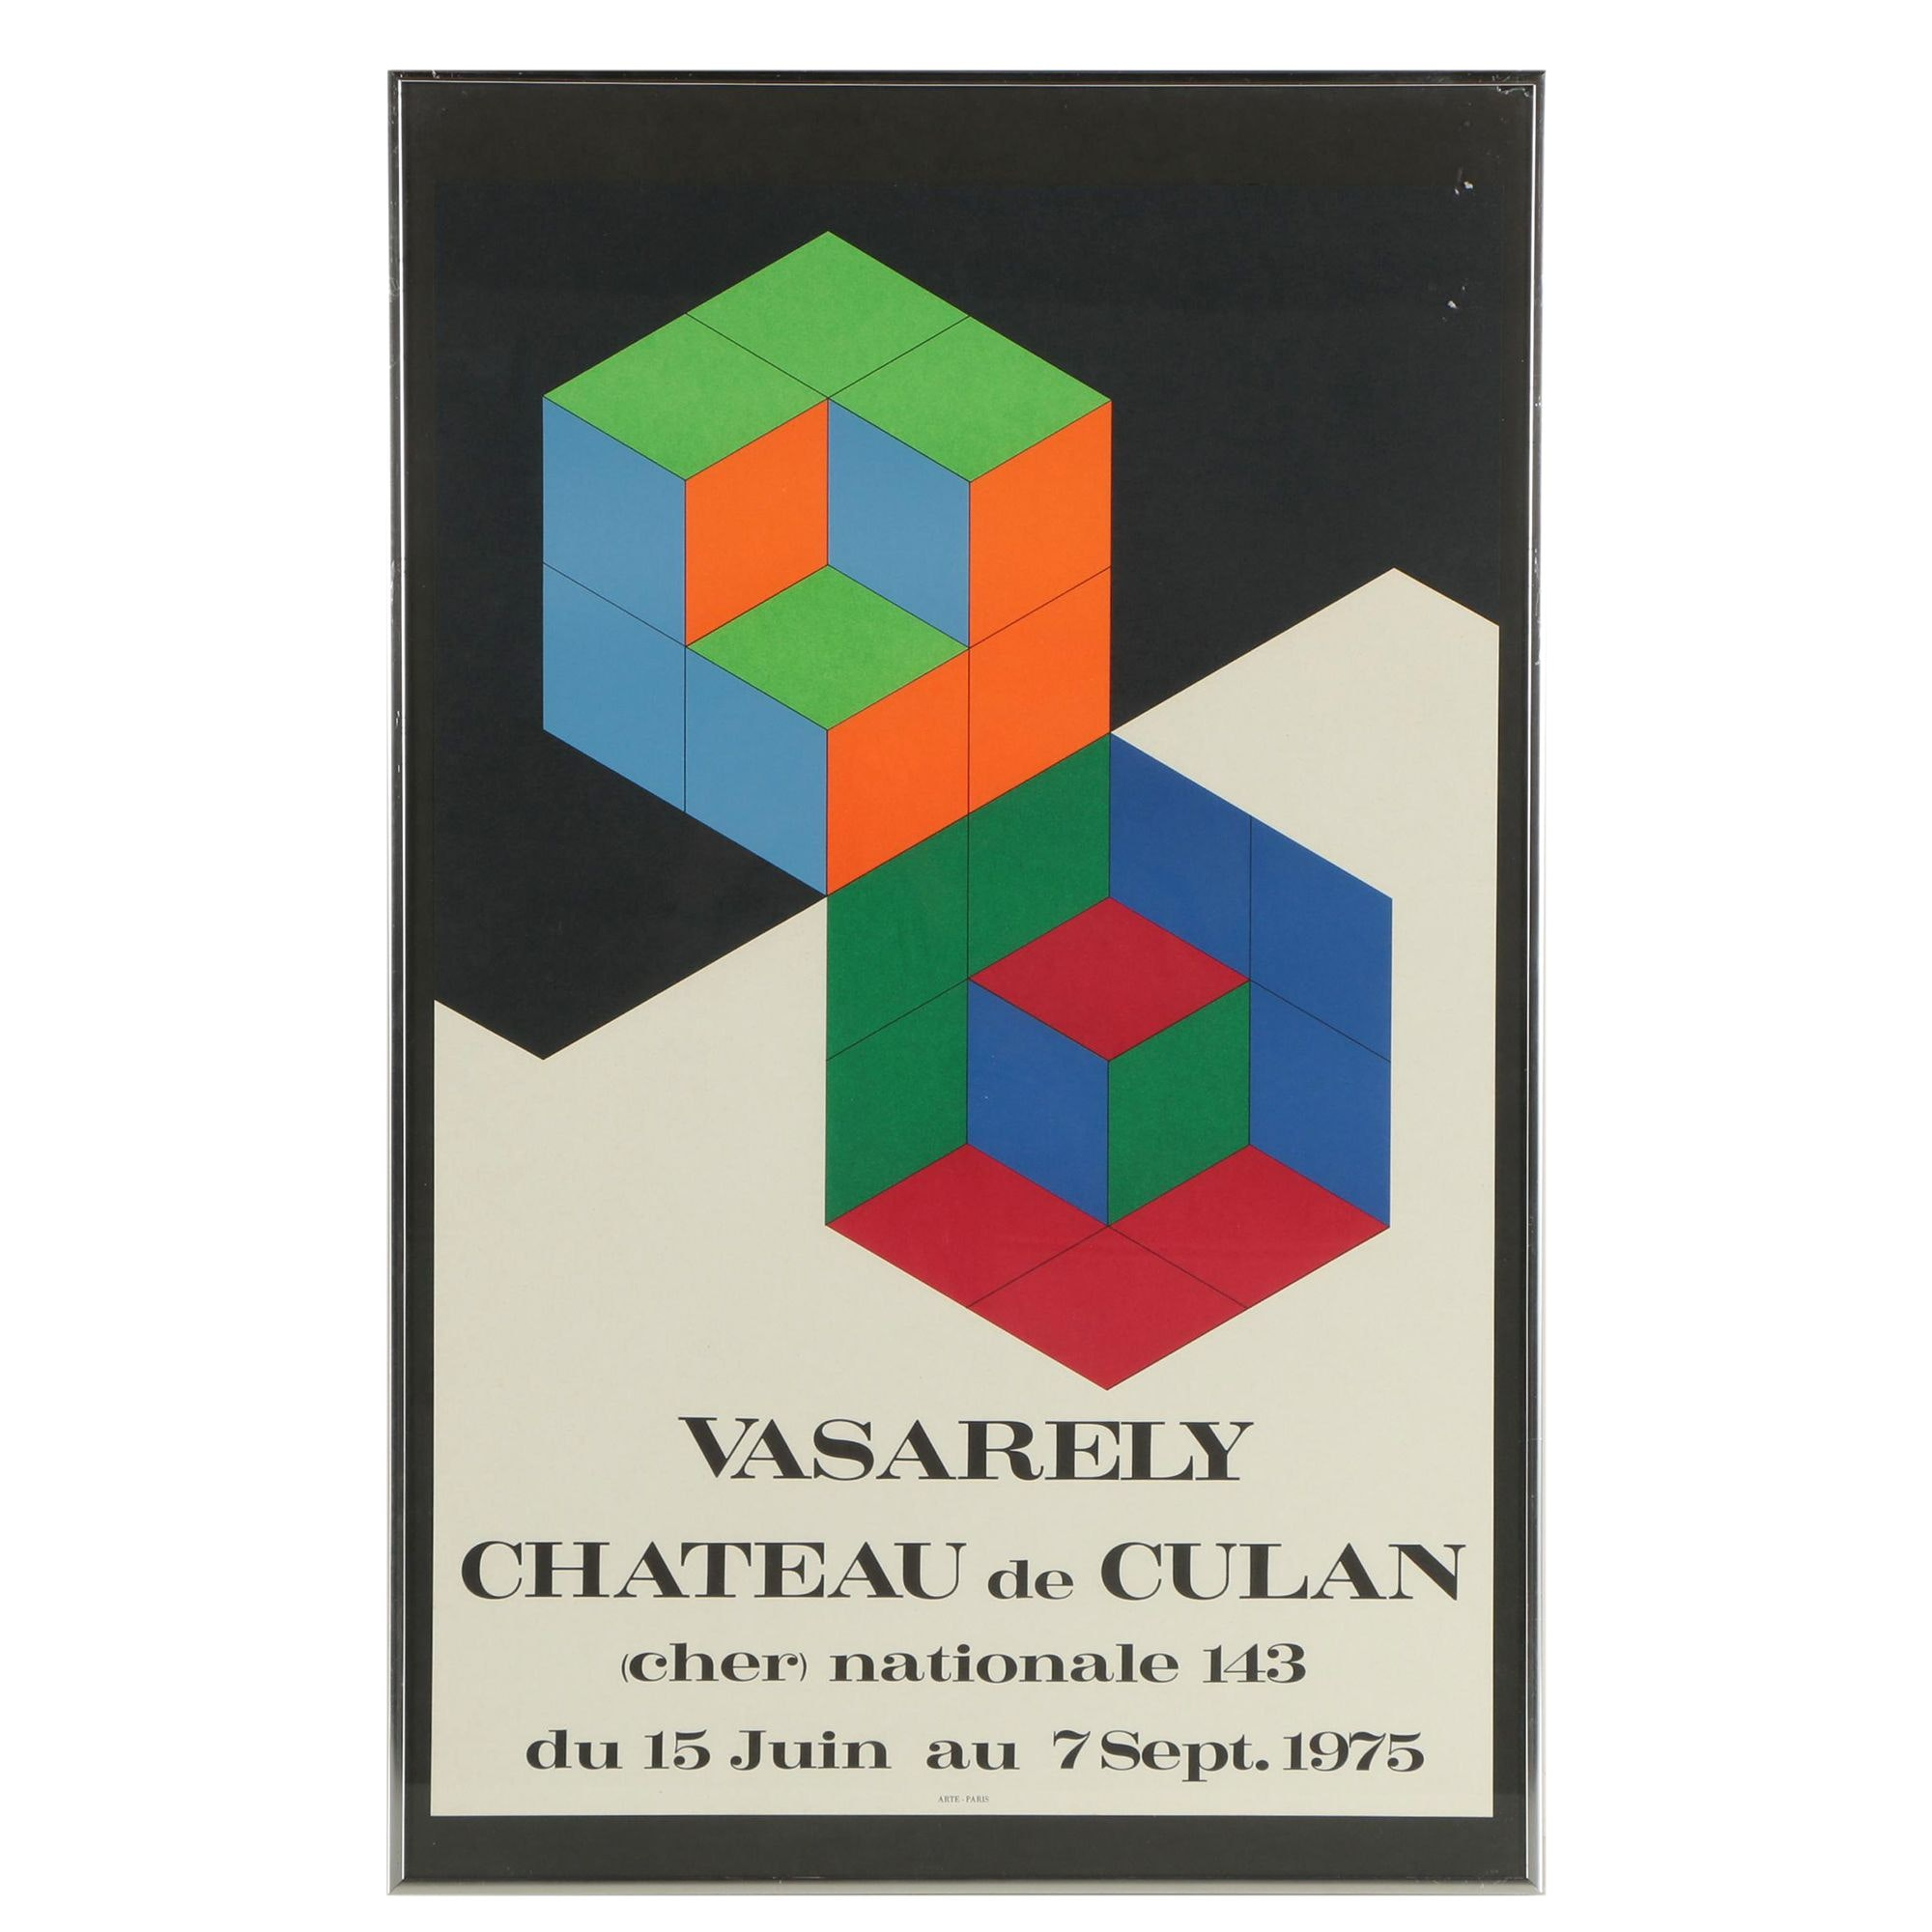 Lithograph Exhibition Poster for Chateau de Culan Featuring Victor Vasarely